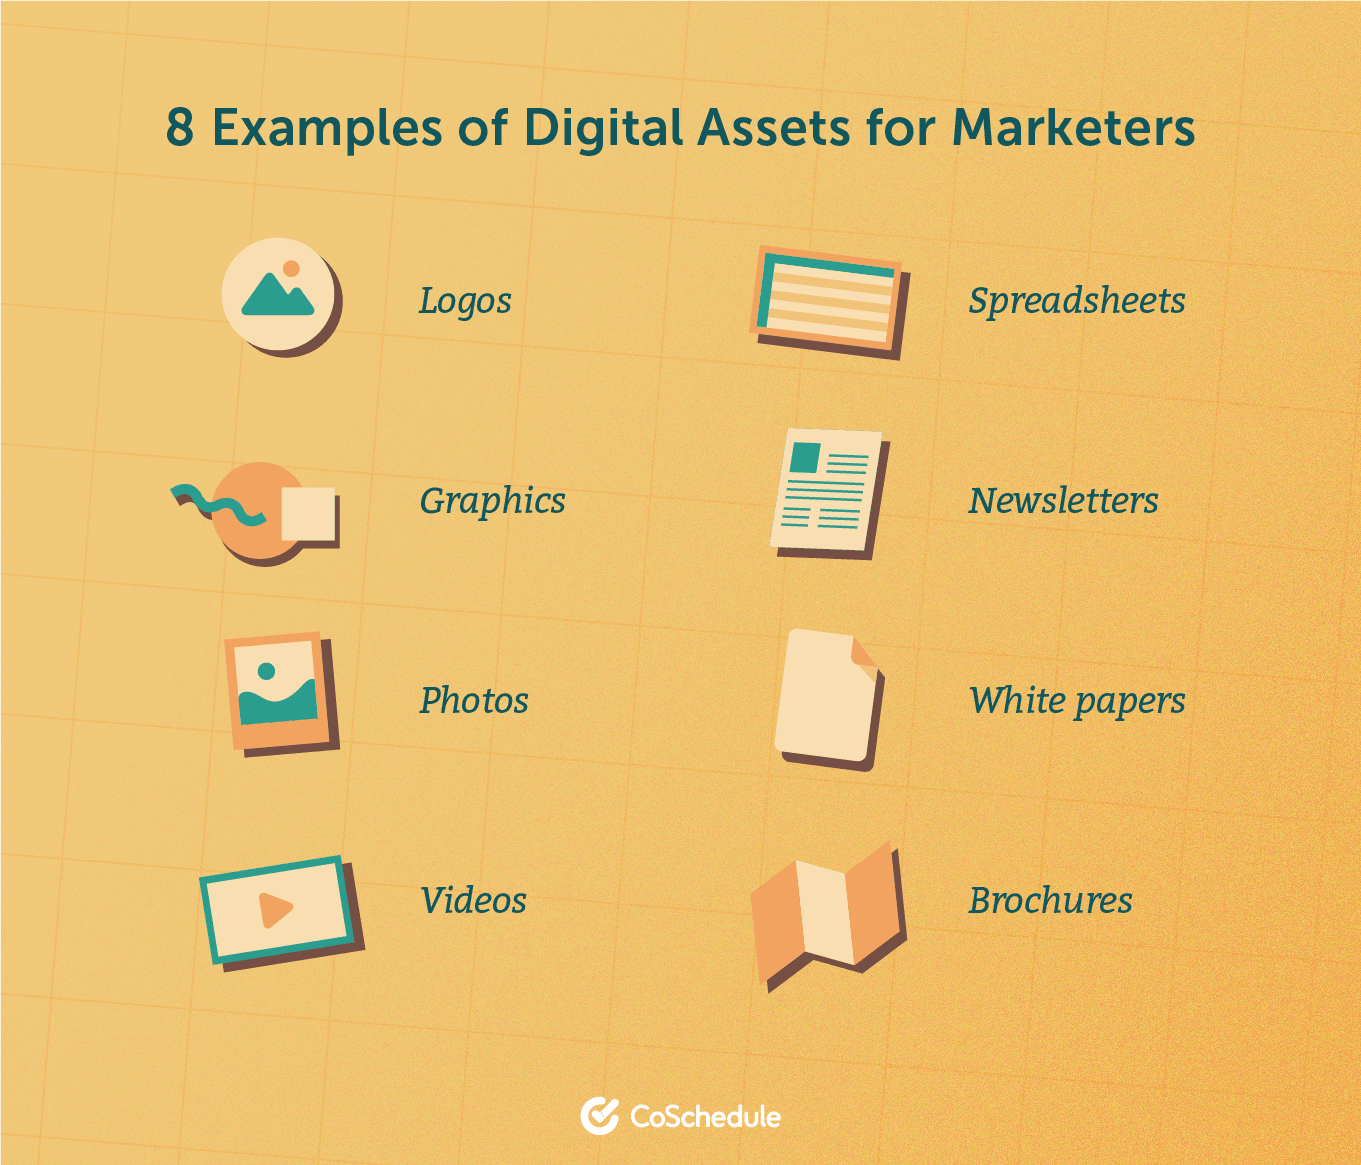 8 examples of digital assets for marketers